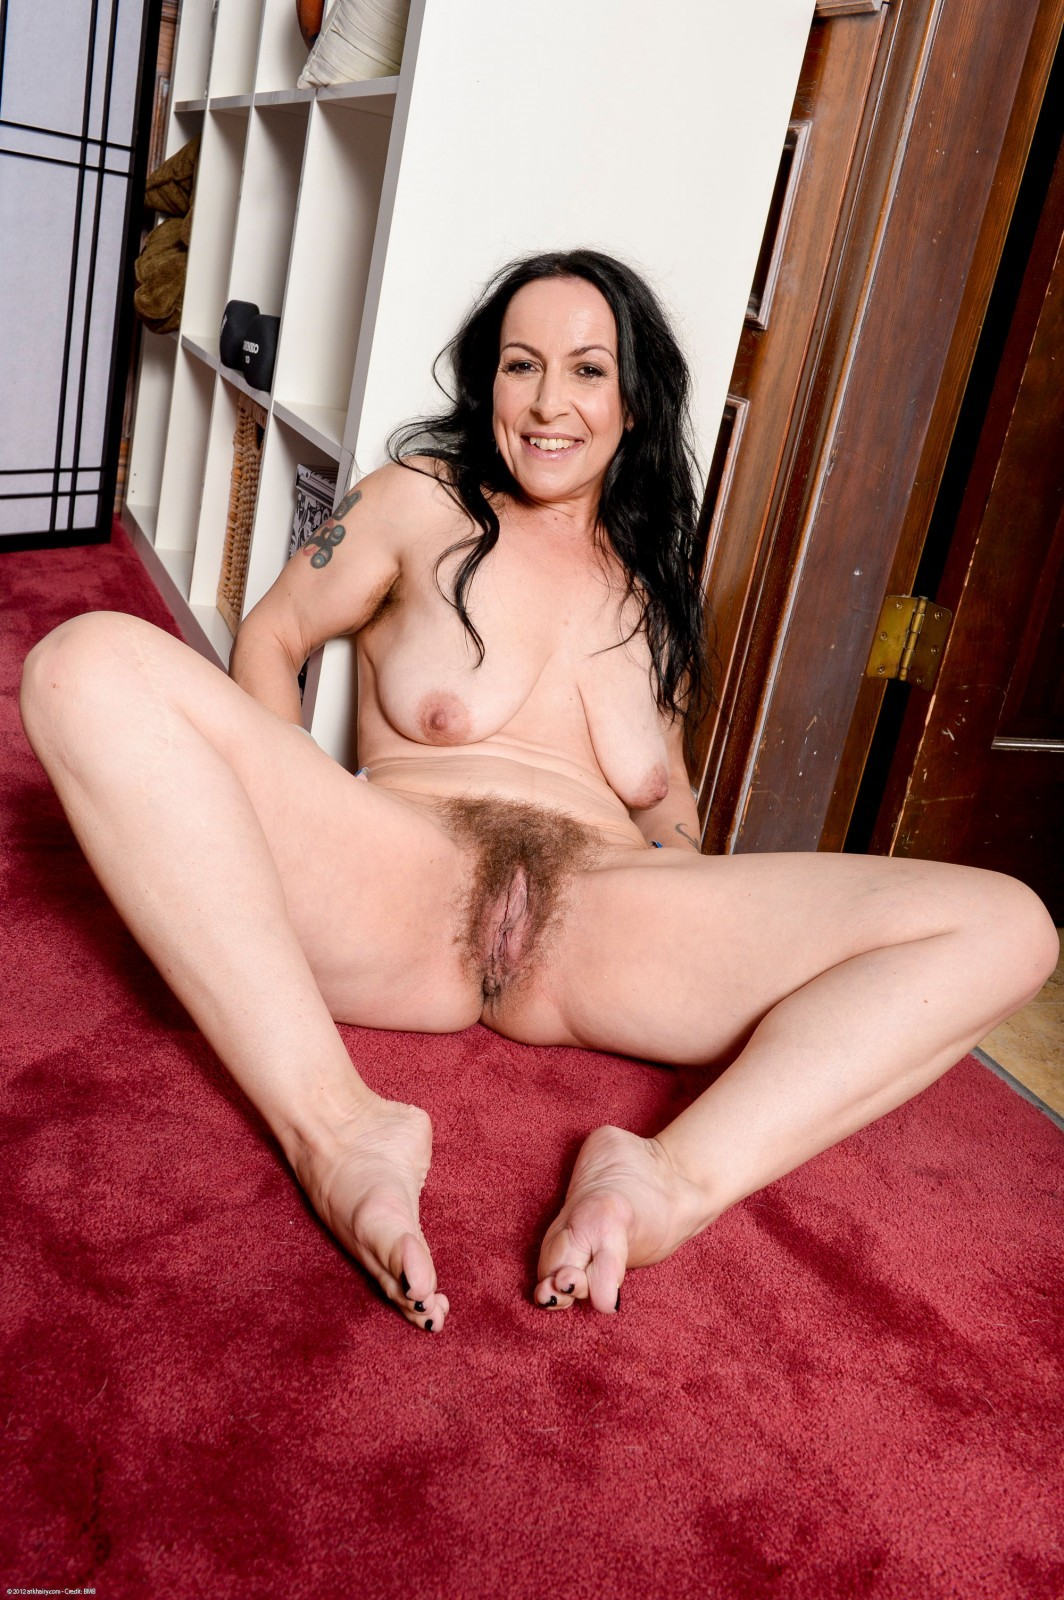 hot amateur threesomes hclips private home clips